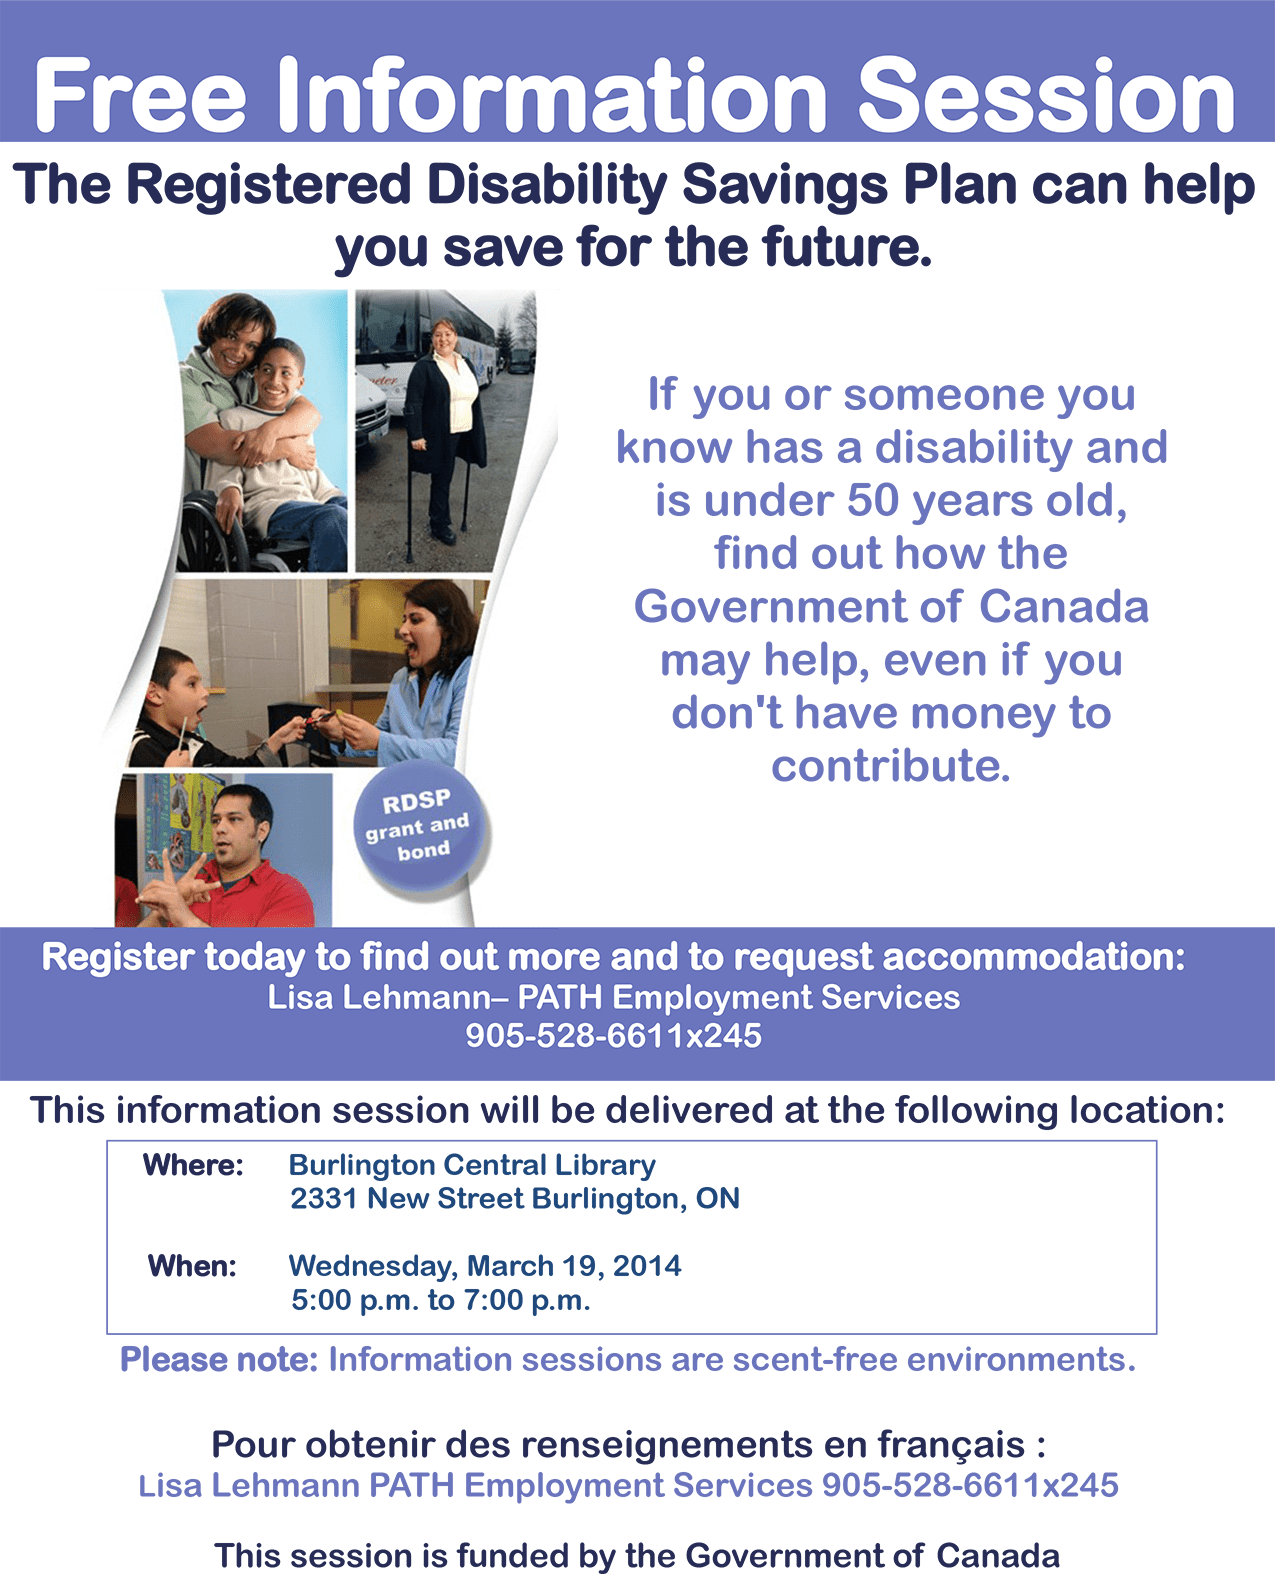 Information session on the Registered Disability Savings Plan